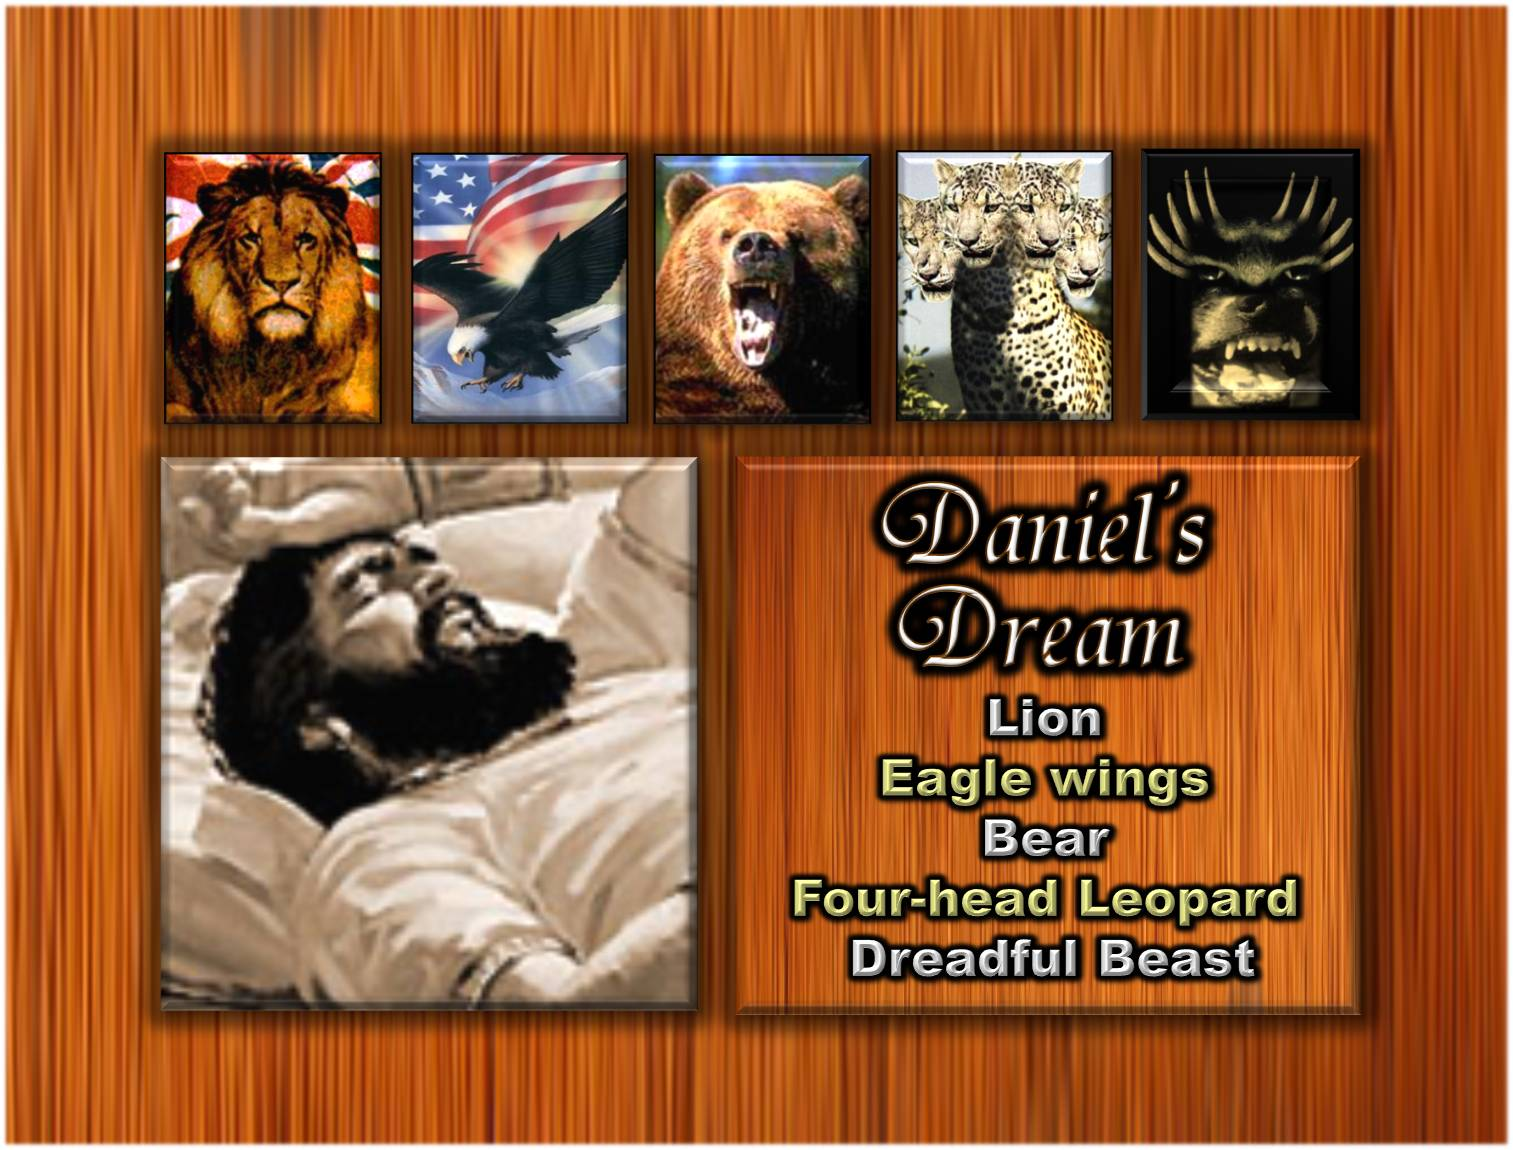 Name day of Daniel. Days of the name day of Daniel in the church calendar